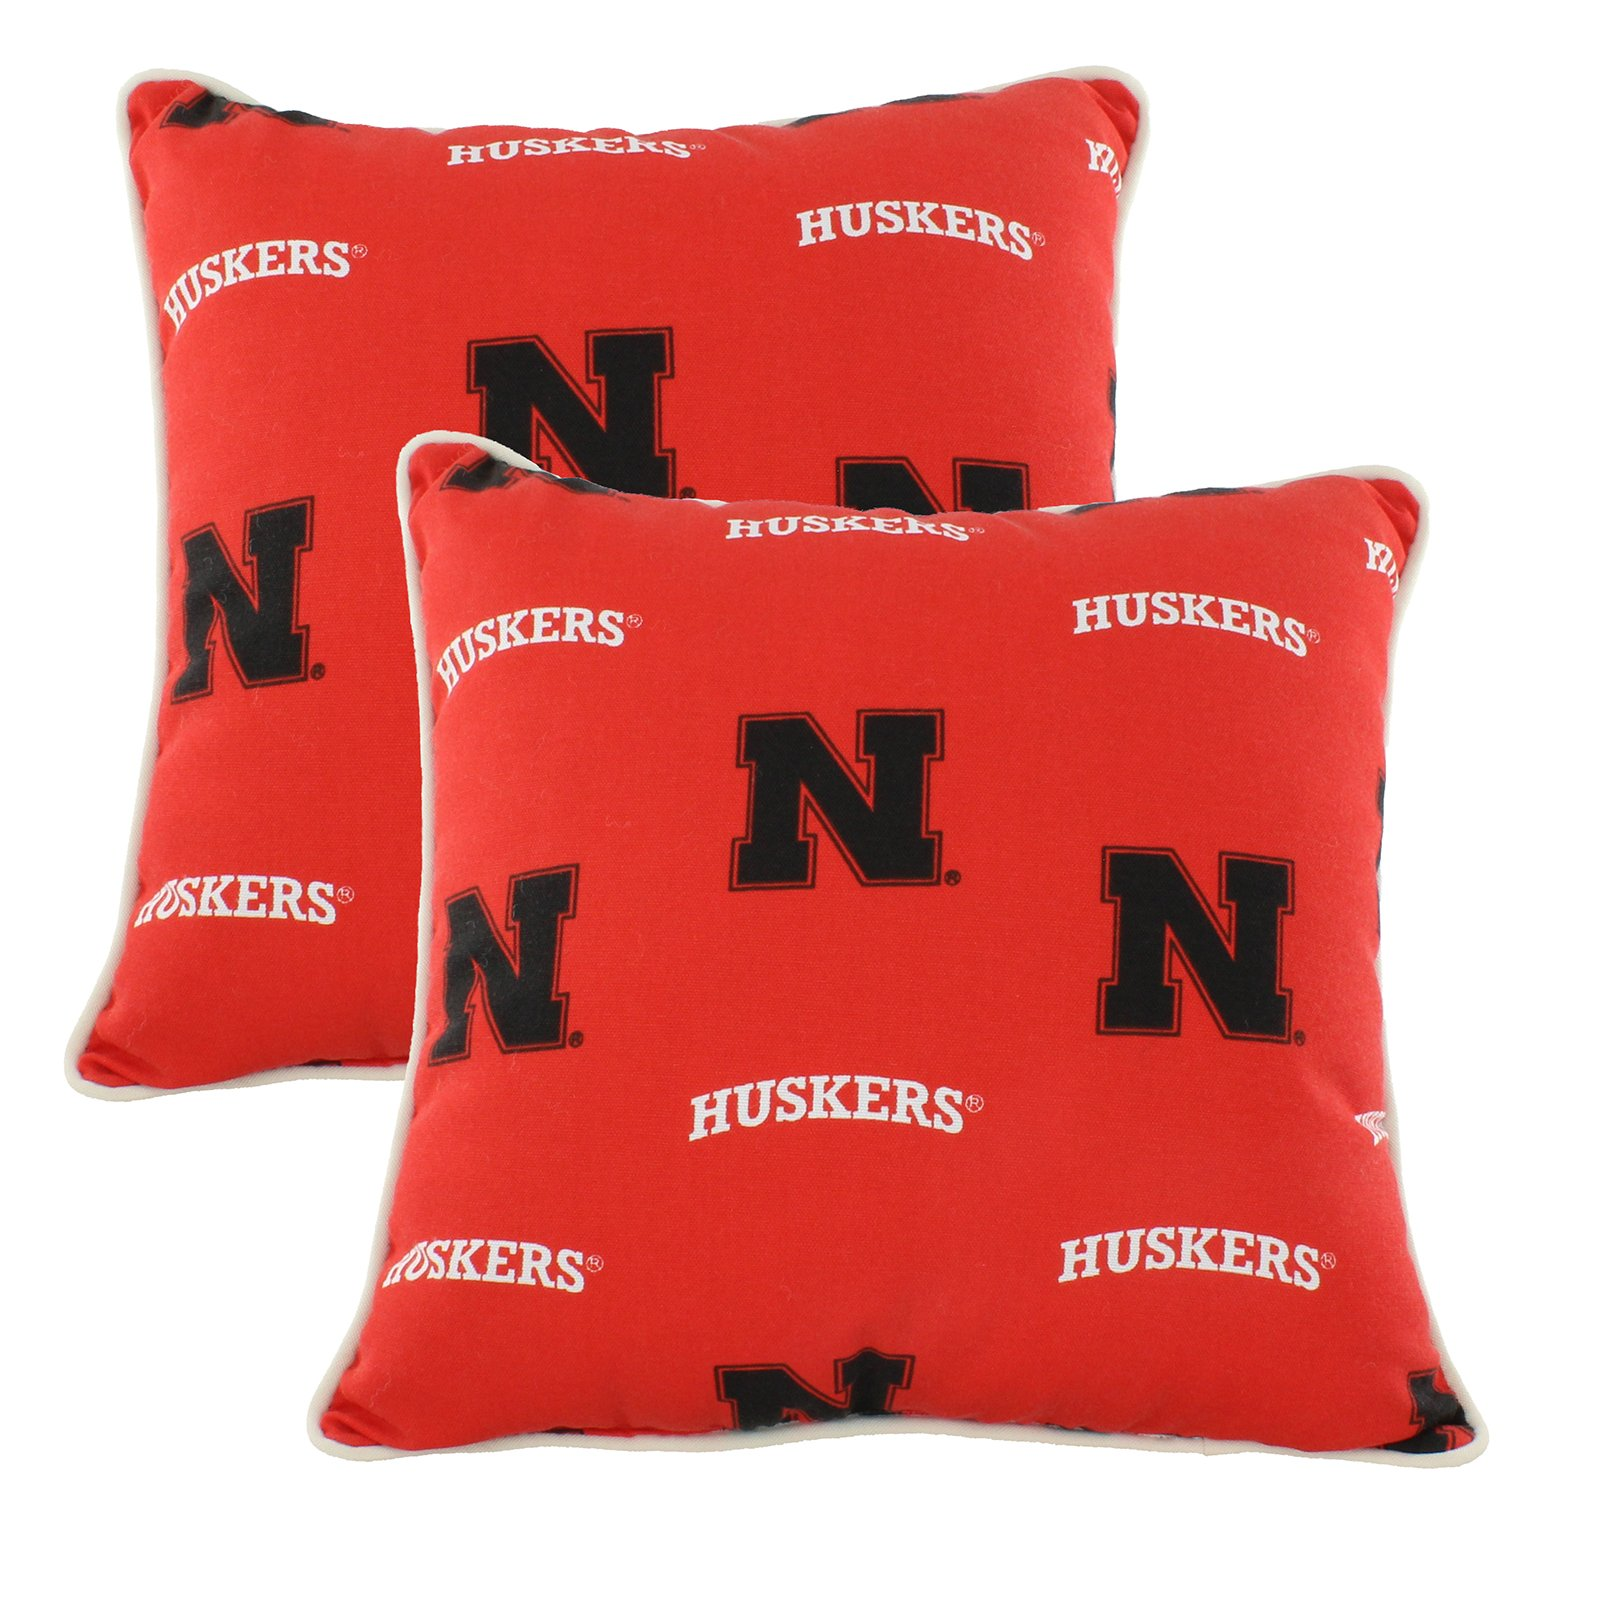 College Covers NEBODPPR Nebraska Huskers Outdoor Decorative Pillow Pair, 16'' x 16'', Red